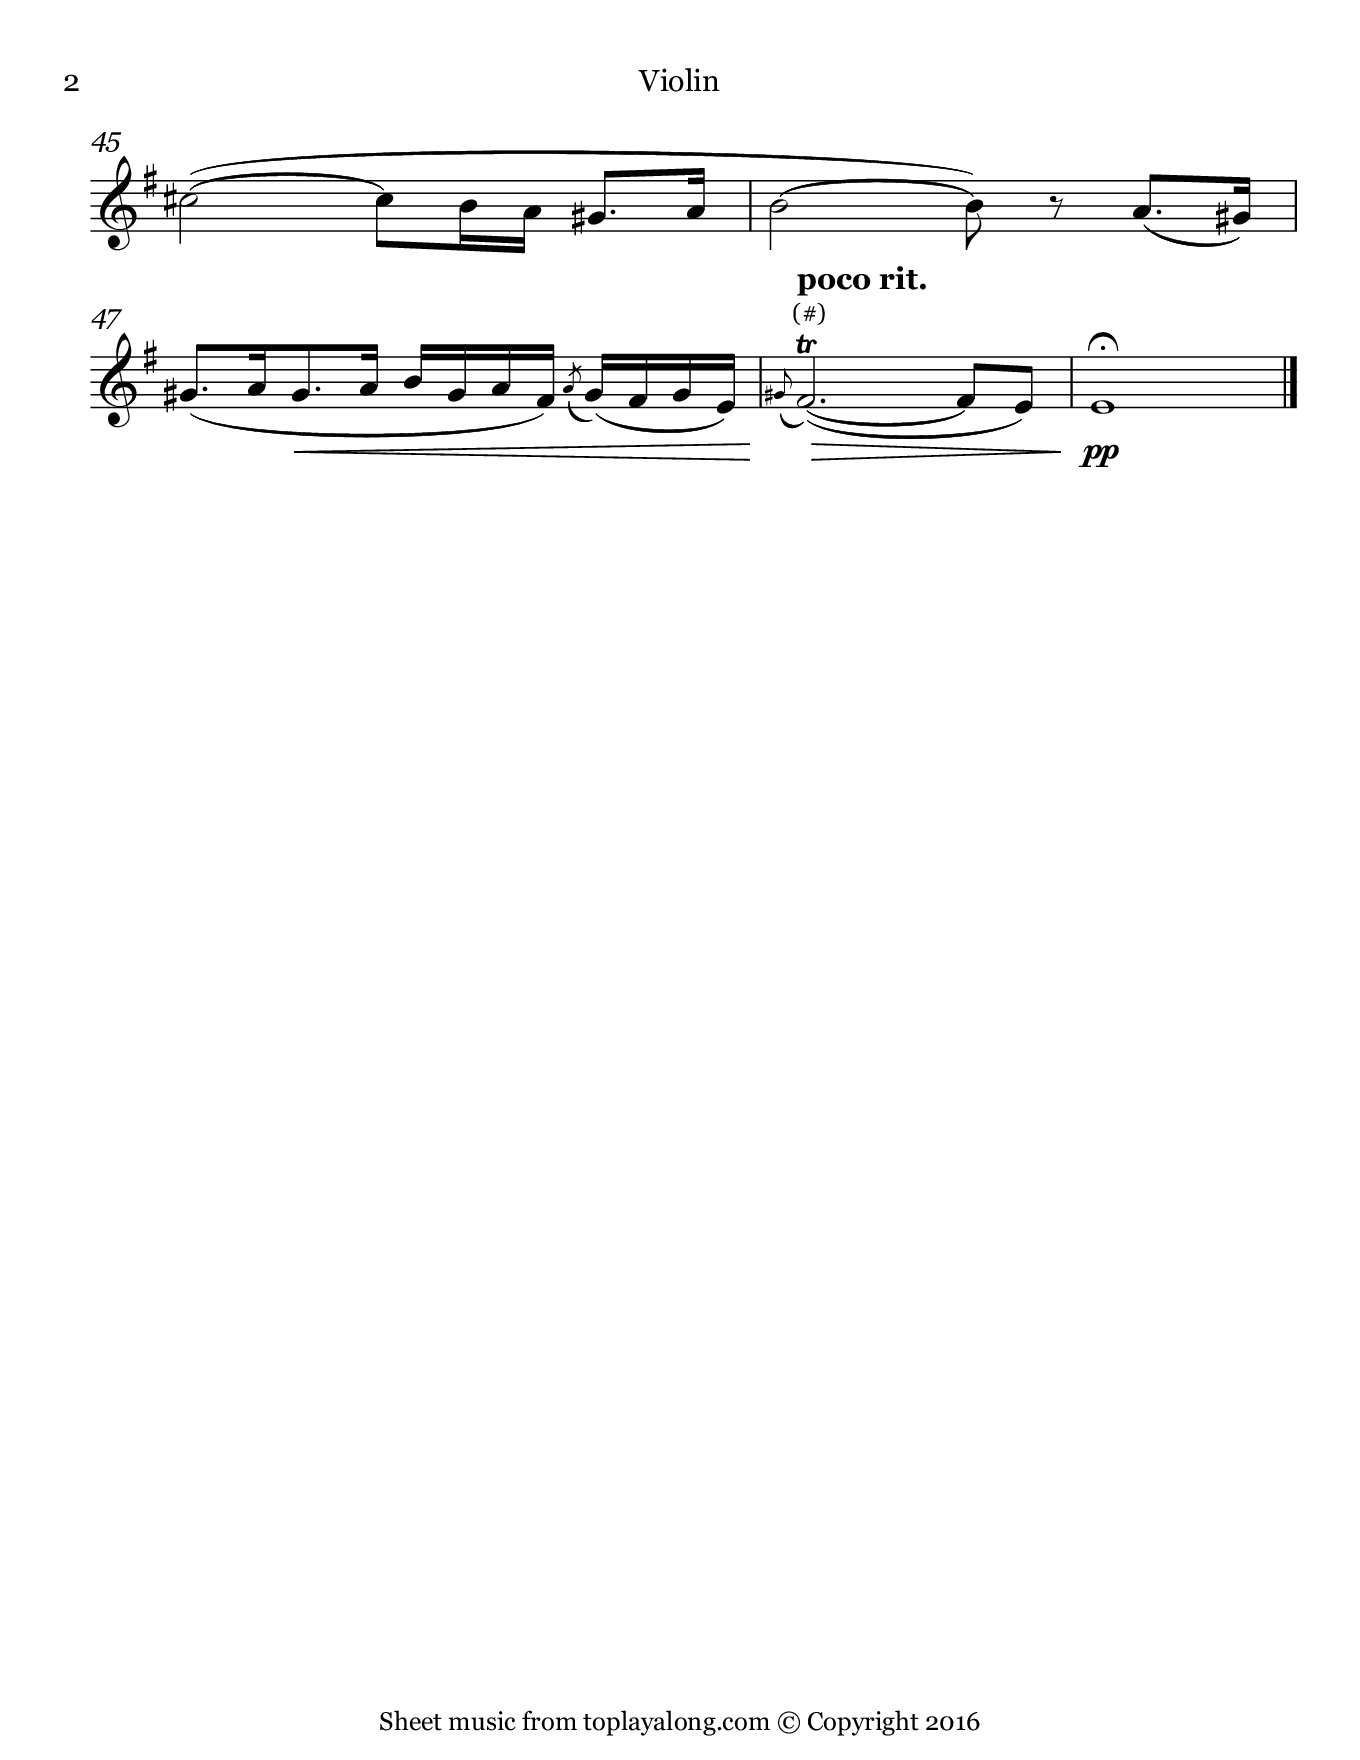 Amarilli, mia bella by Caccini. Sheet music for Violin, page 2.